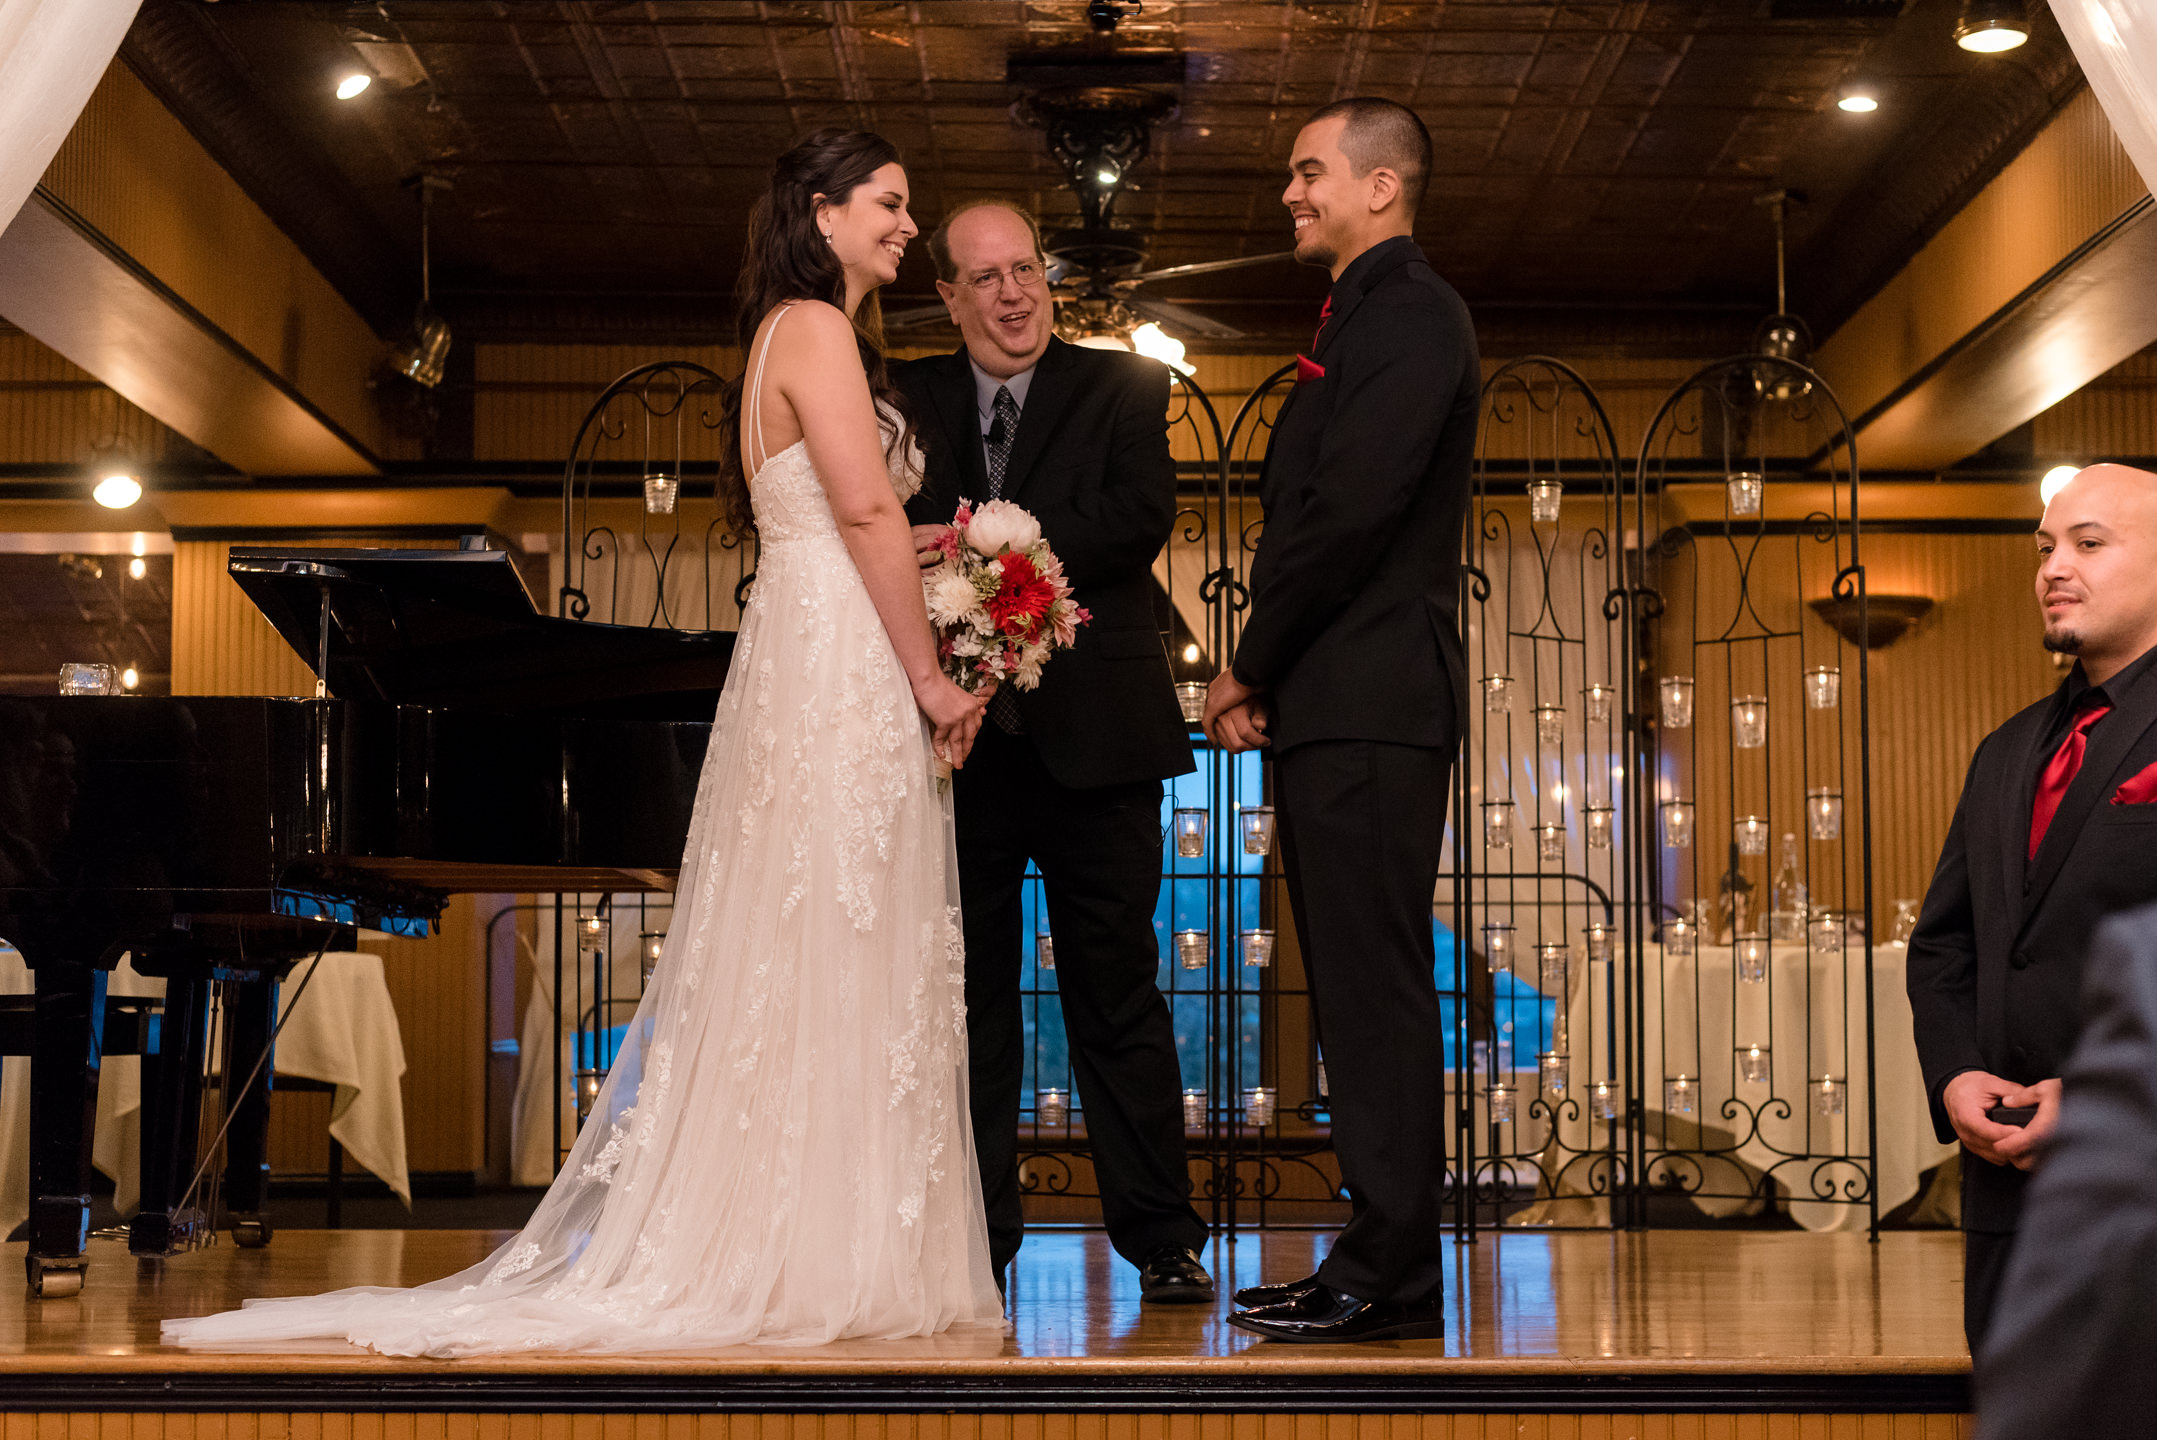 Bride and Mexican Groom Wedding Ceremony at Lake Union Cafe